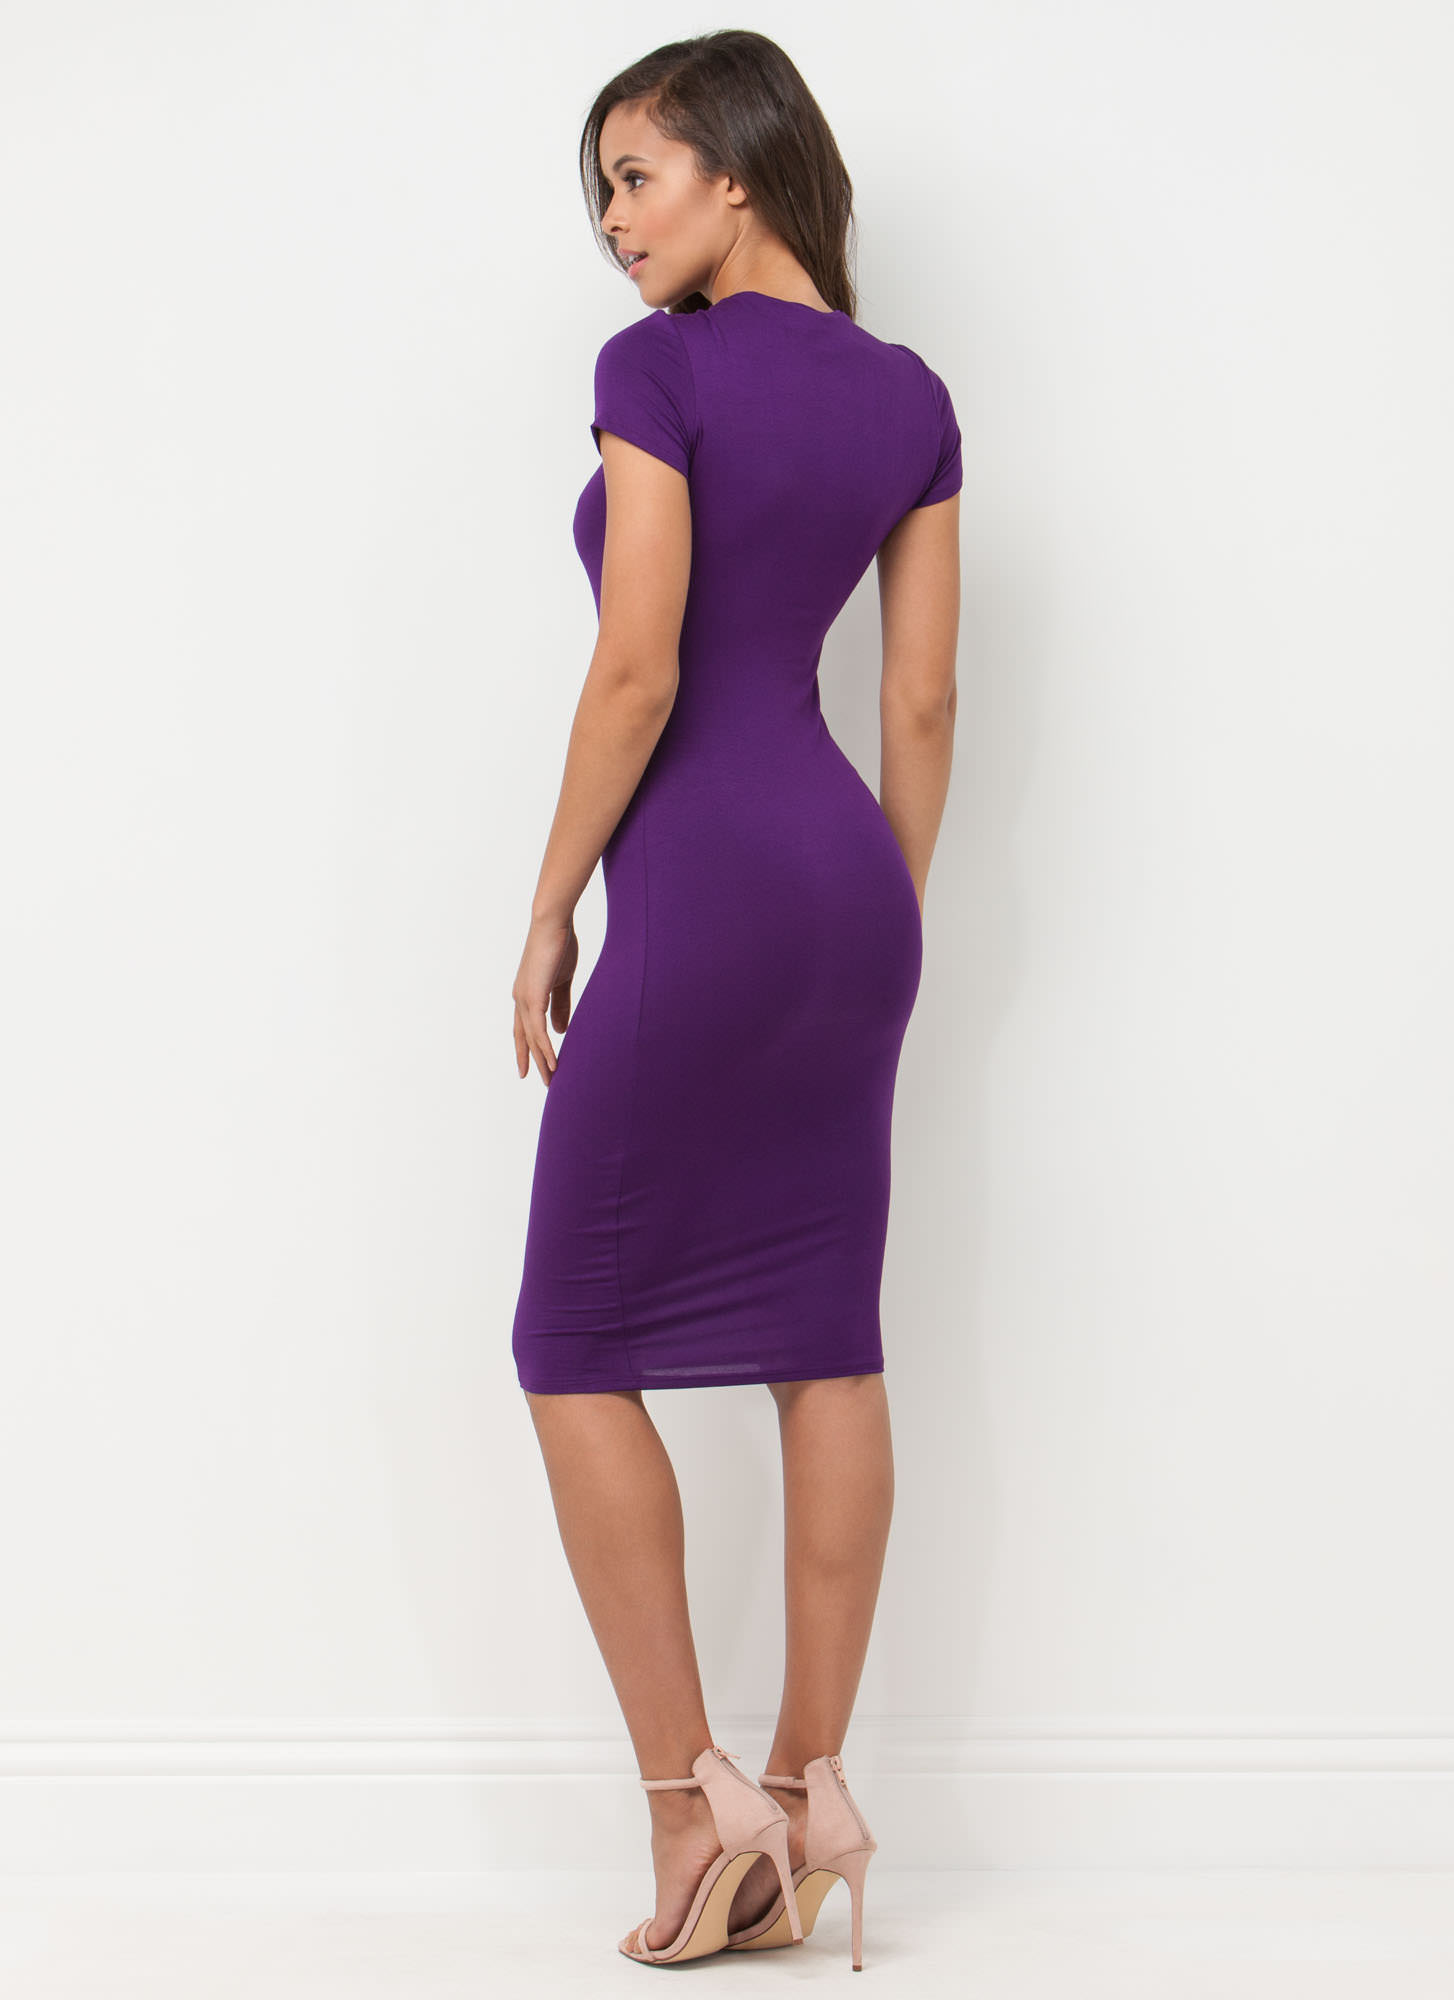 Heartbreaker Babe Bodycon Dress PURPLE